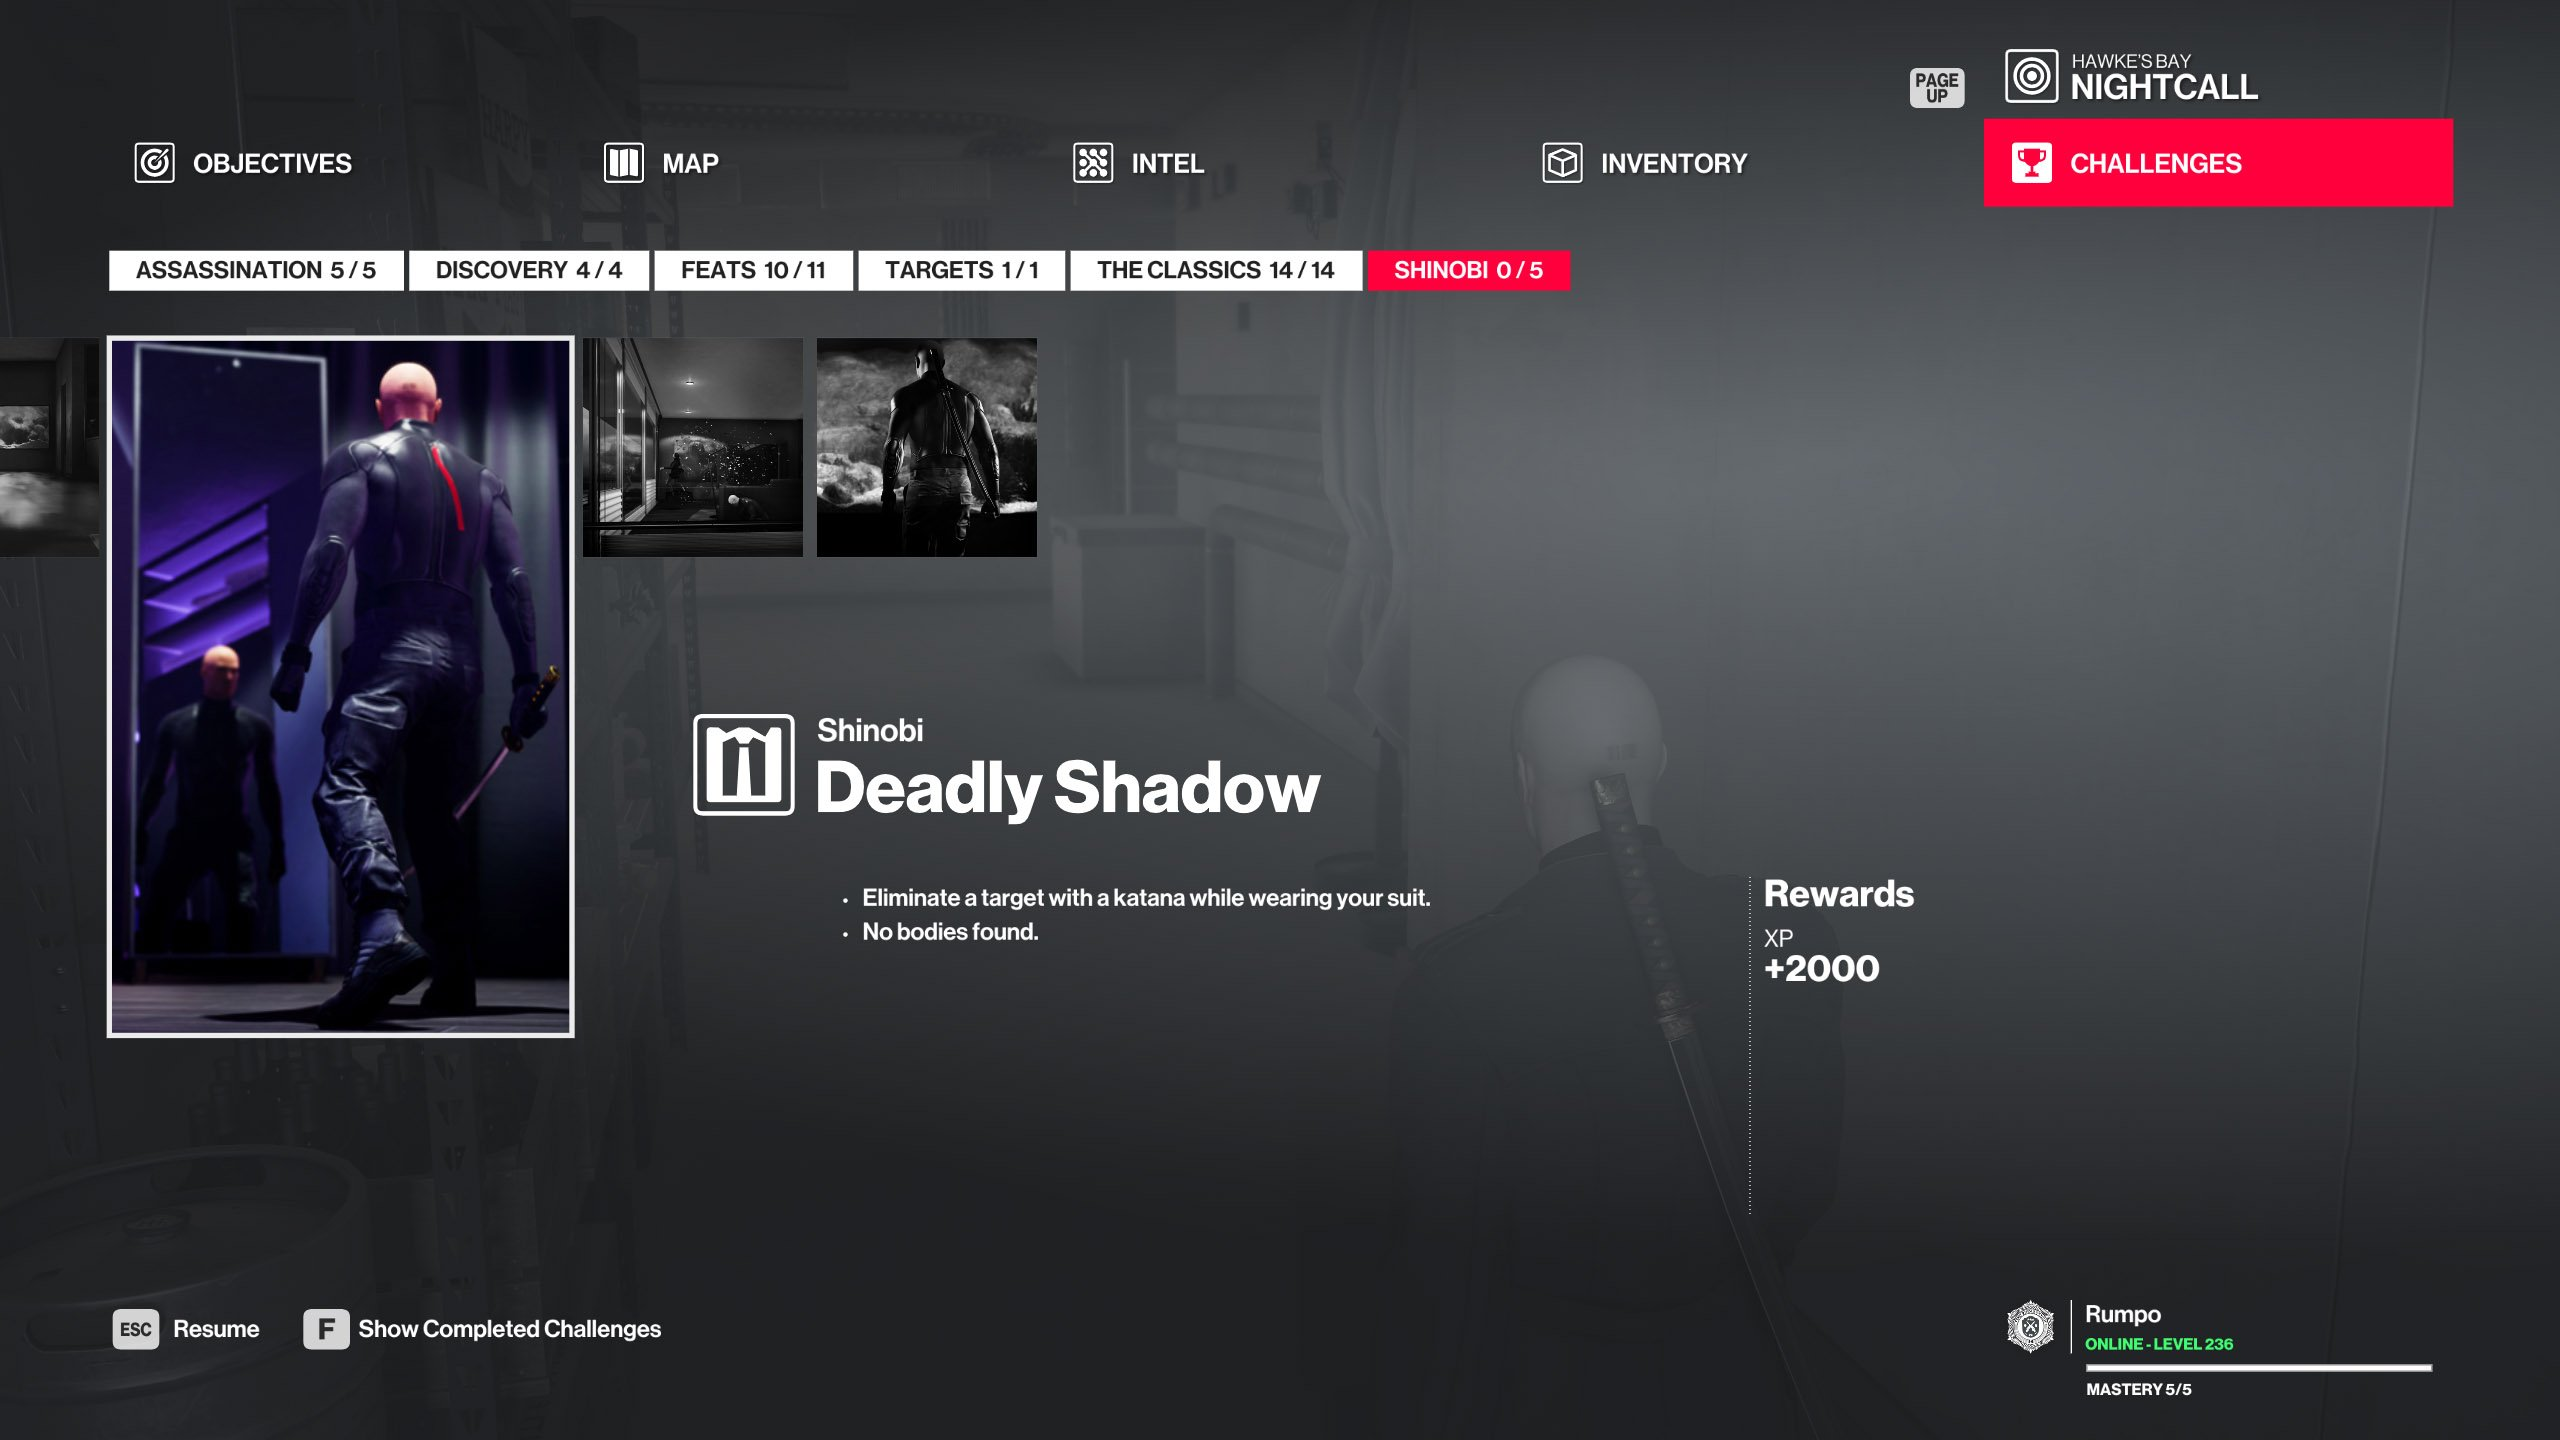 Hitman Shinobi walkthrough - Deadly Shadow challenge